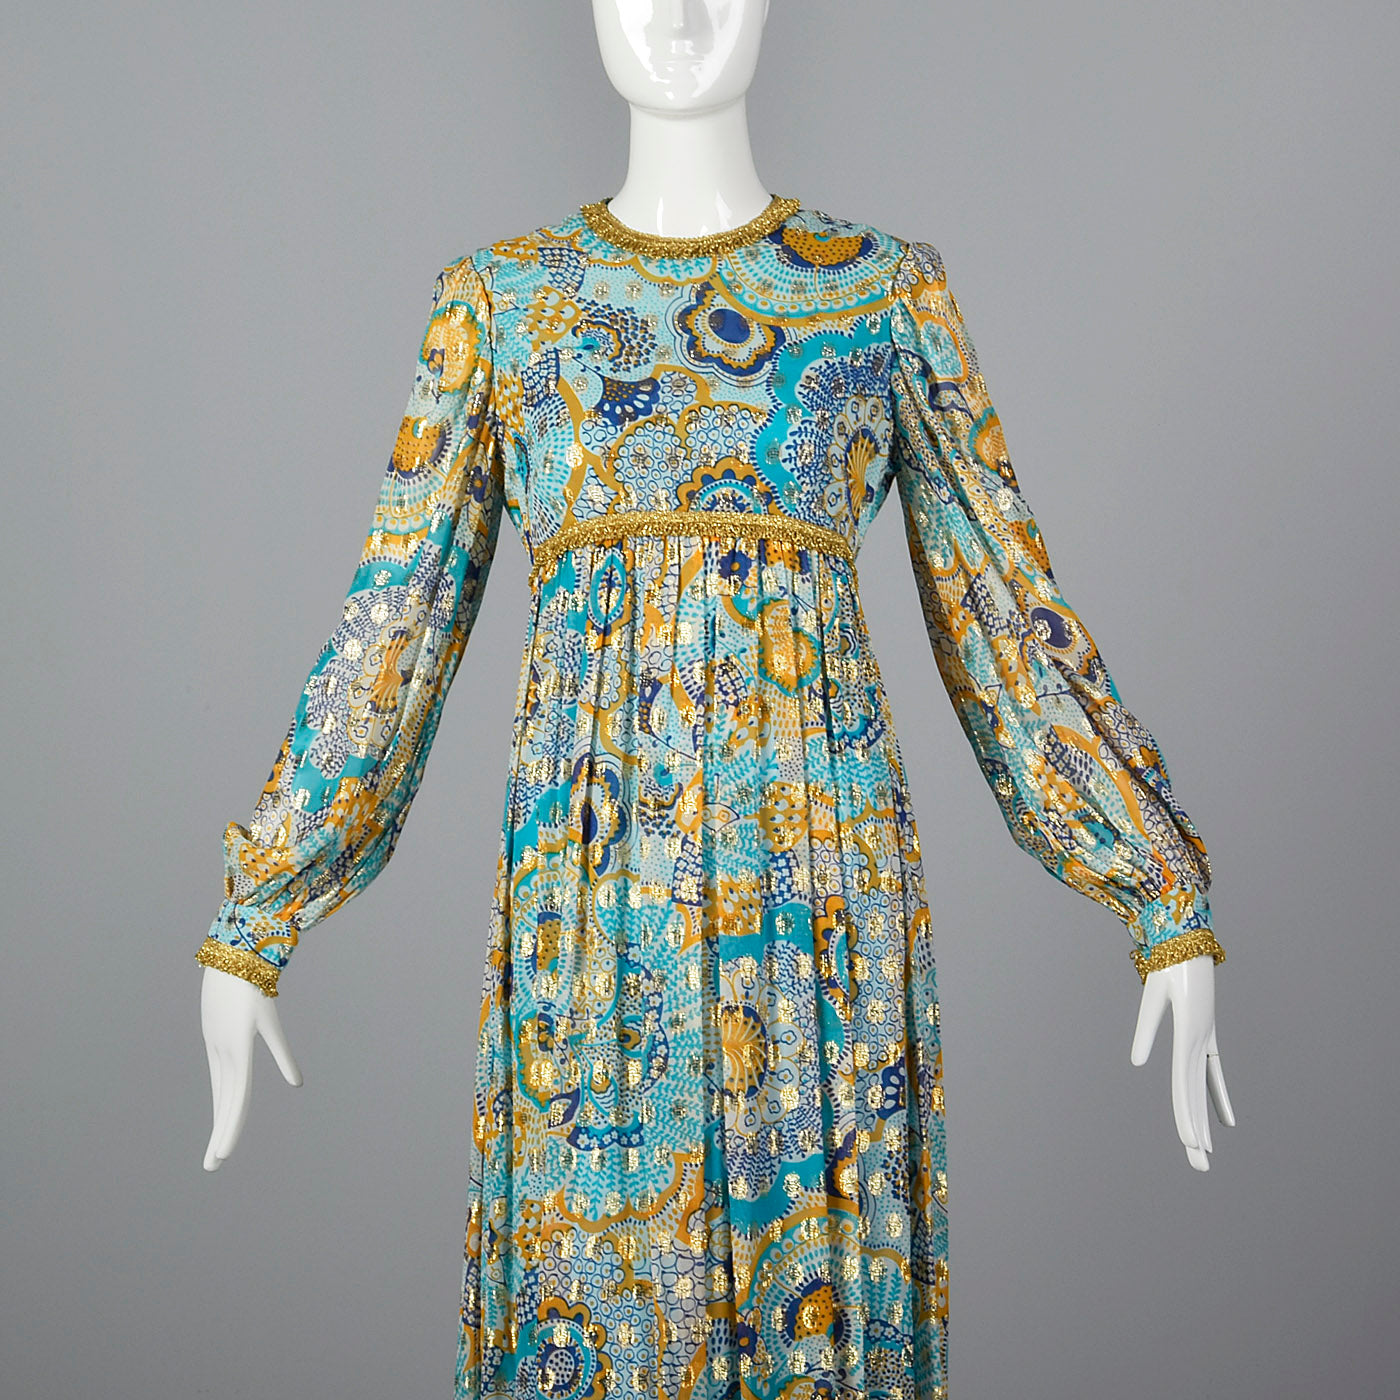 1970s Mollie Parnis Bohemian Maxi Dress with Long Sleeves